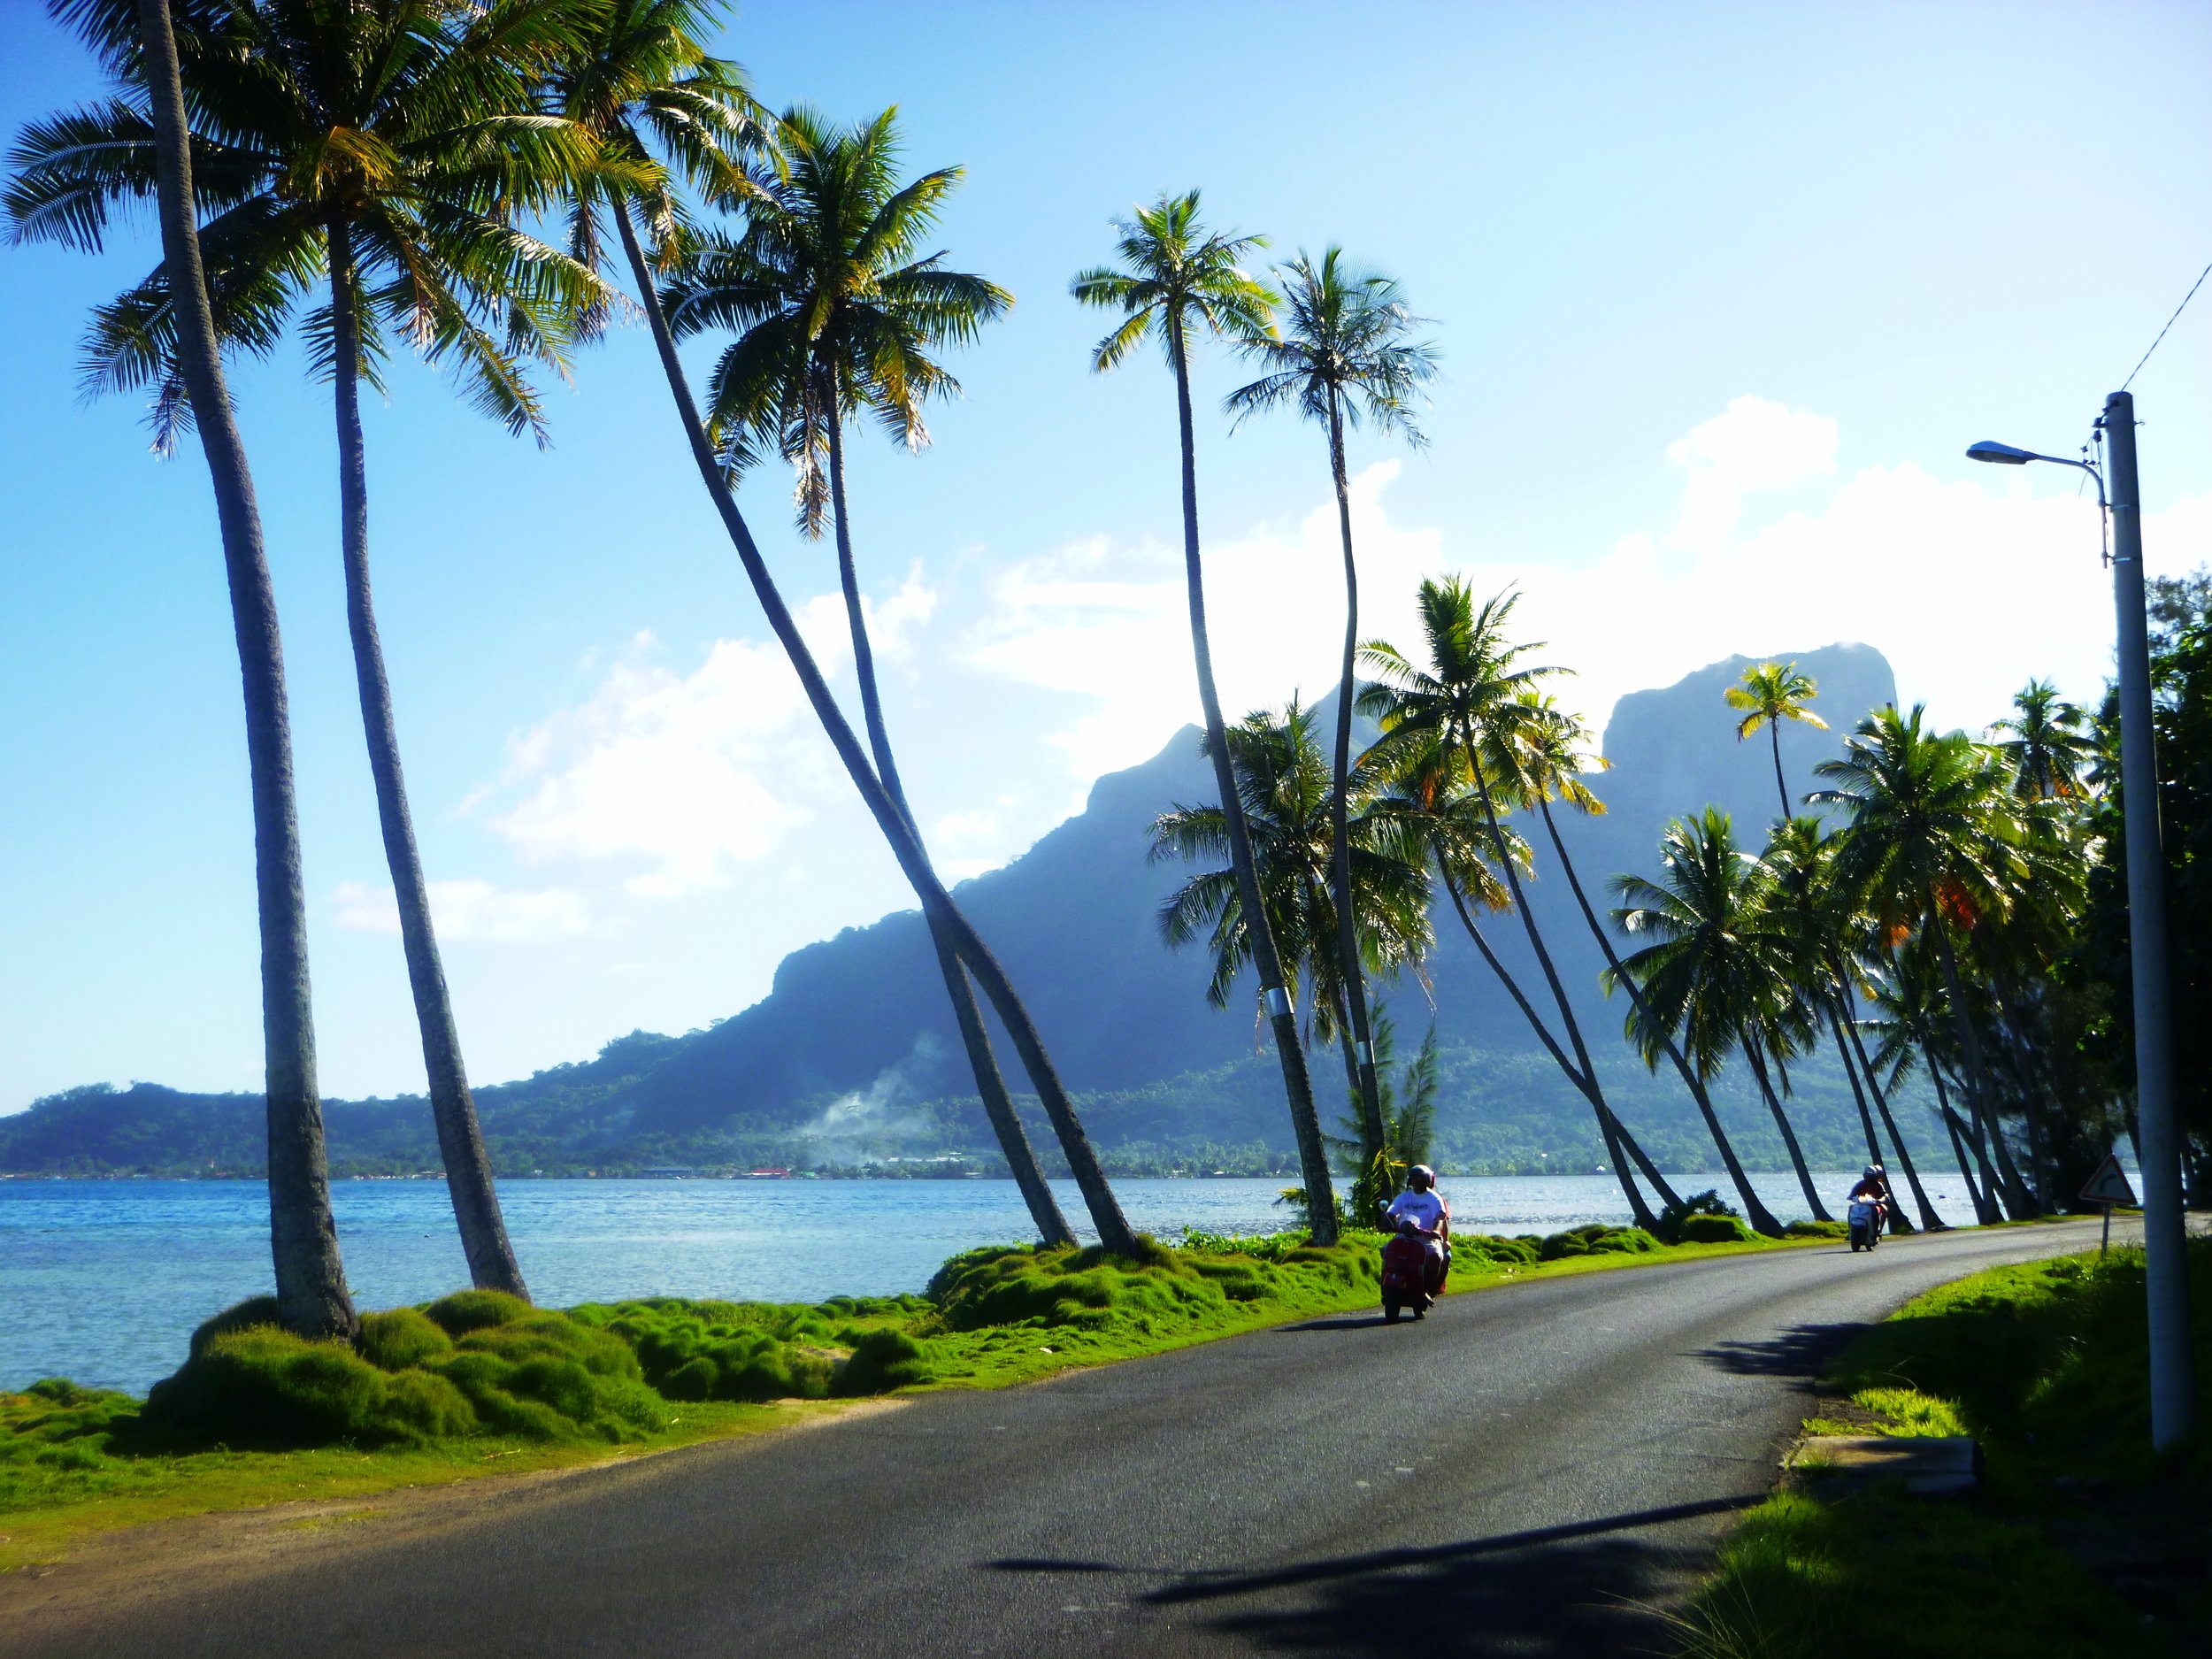 Beautiful vistas and coconut-lined roads make even walking in Bora Bora a pleasure